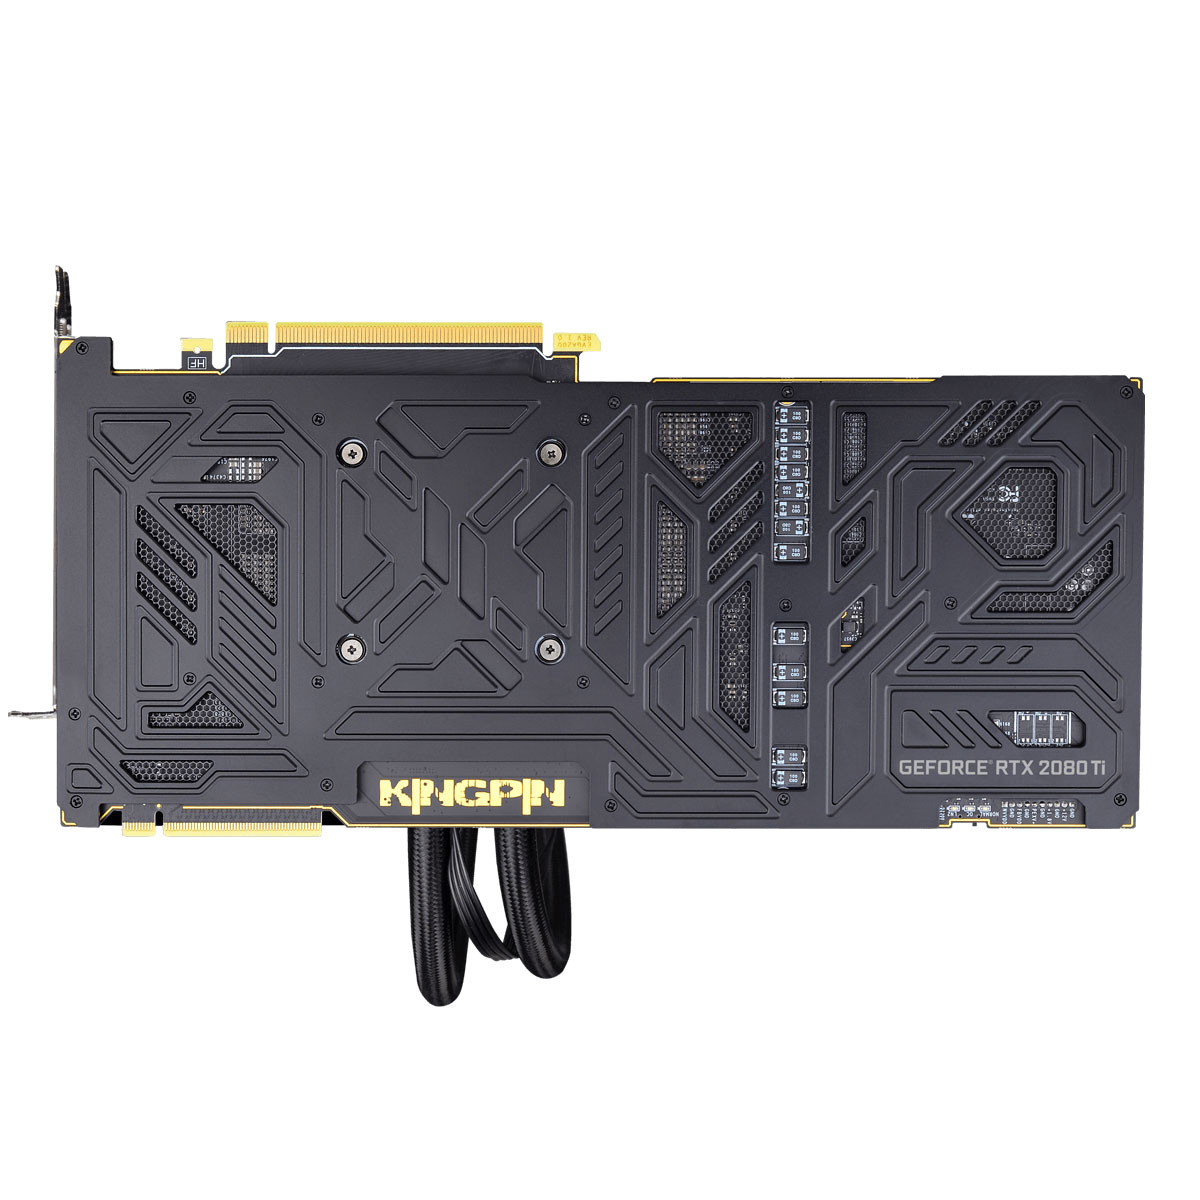 EVGA GeForce RTX 2080 Ti KINGPIN Available Now for USD $1,900 - FunkyKit